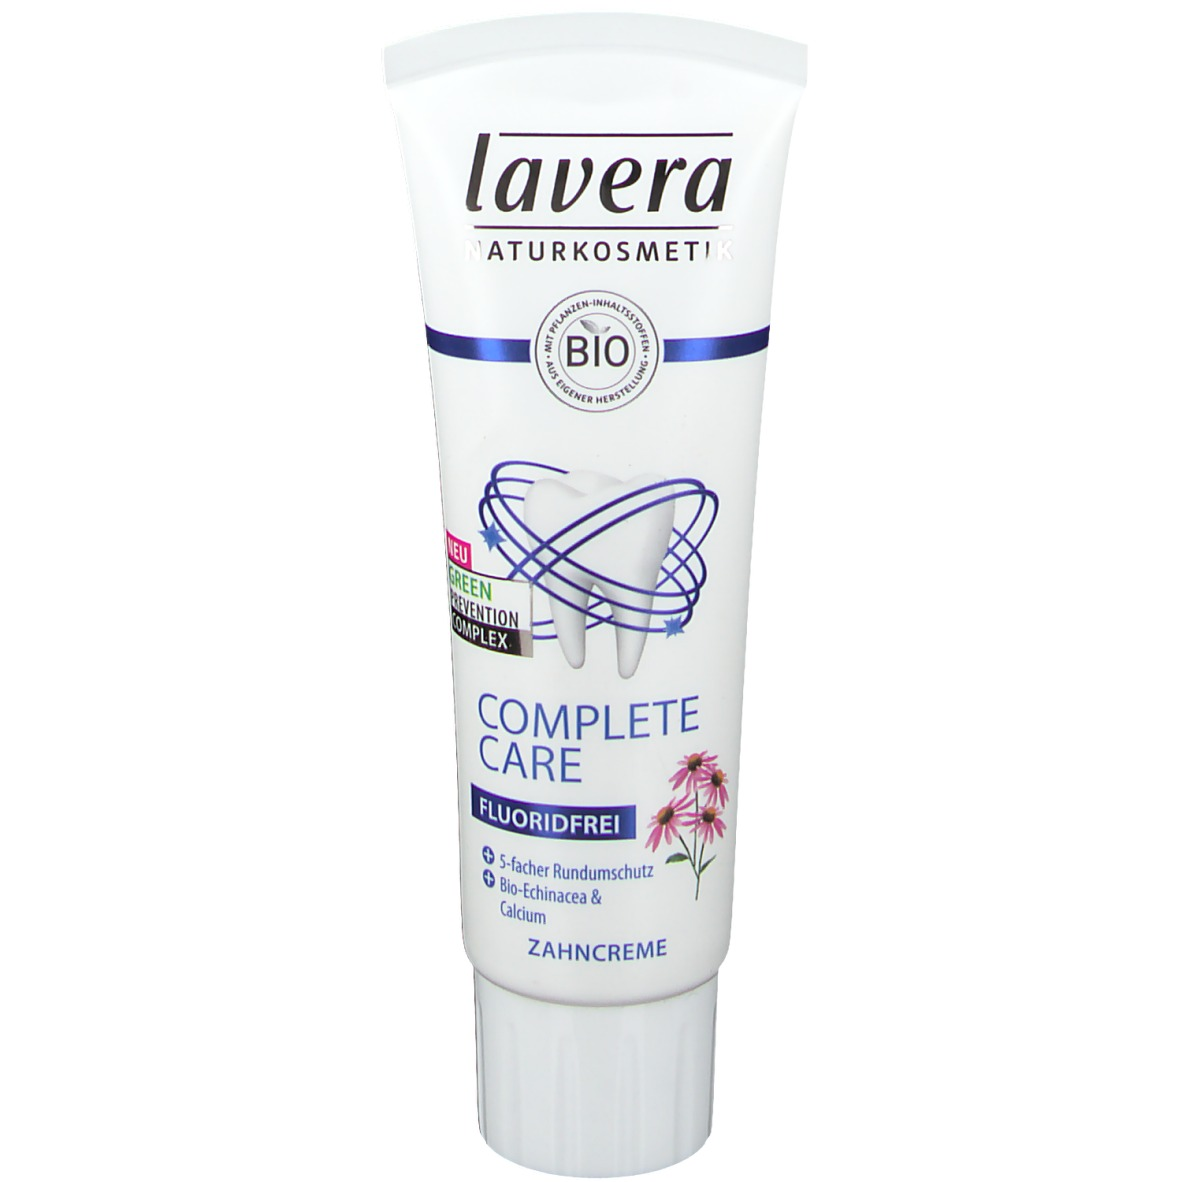 Lavera zobna pasta Complete Care 75ml